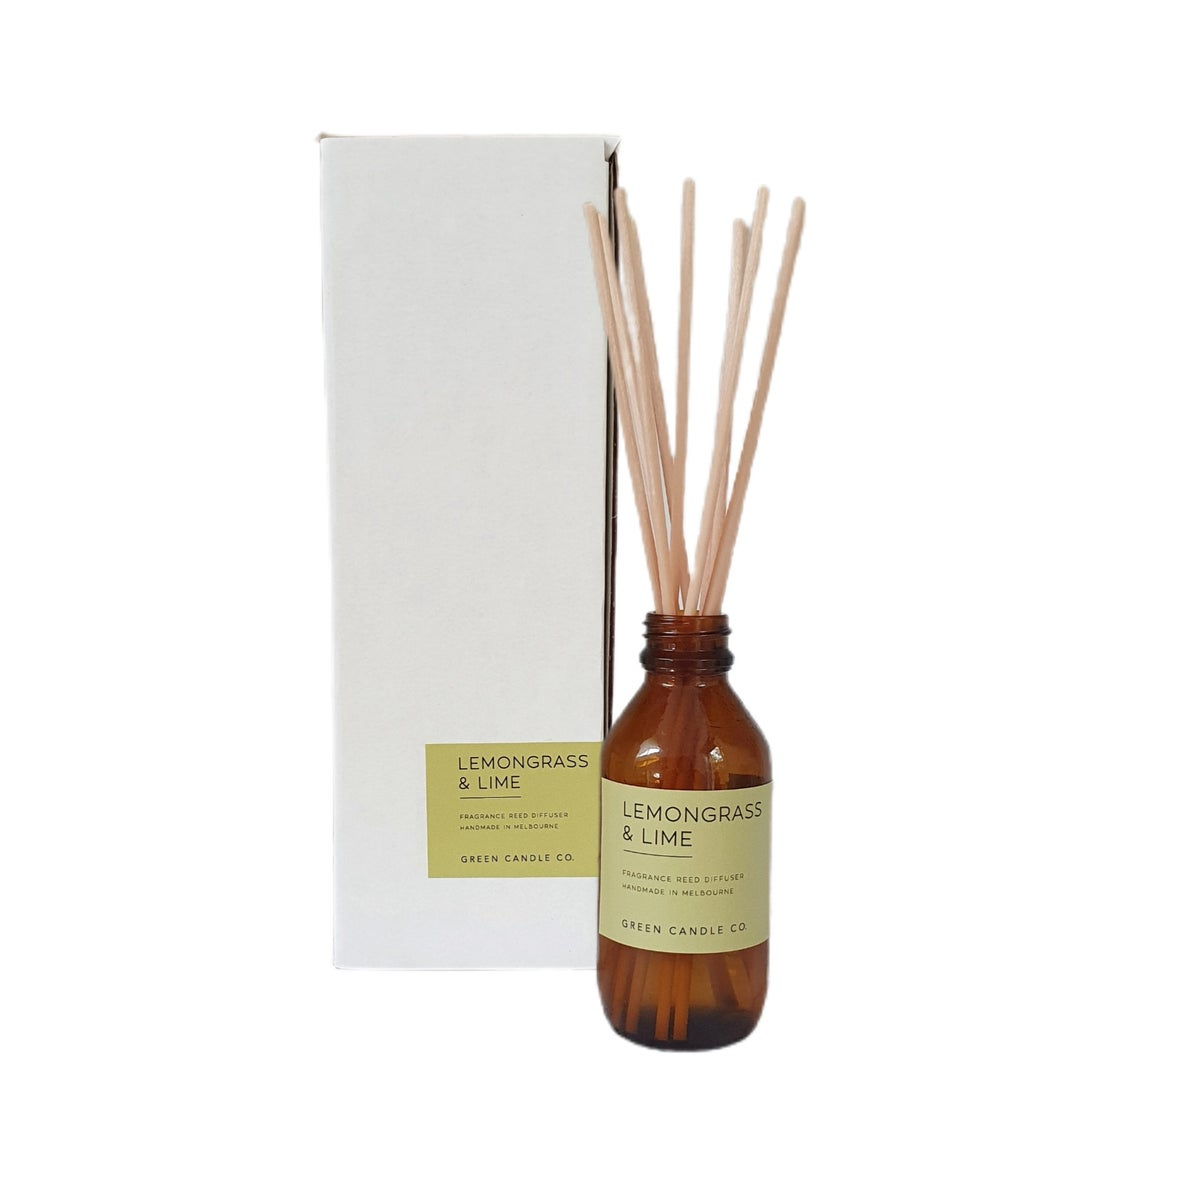 Image of LEMONGRASS & LIME / Reed Diffuser